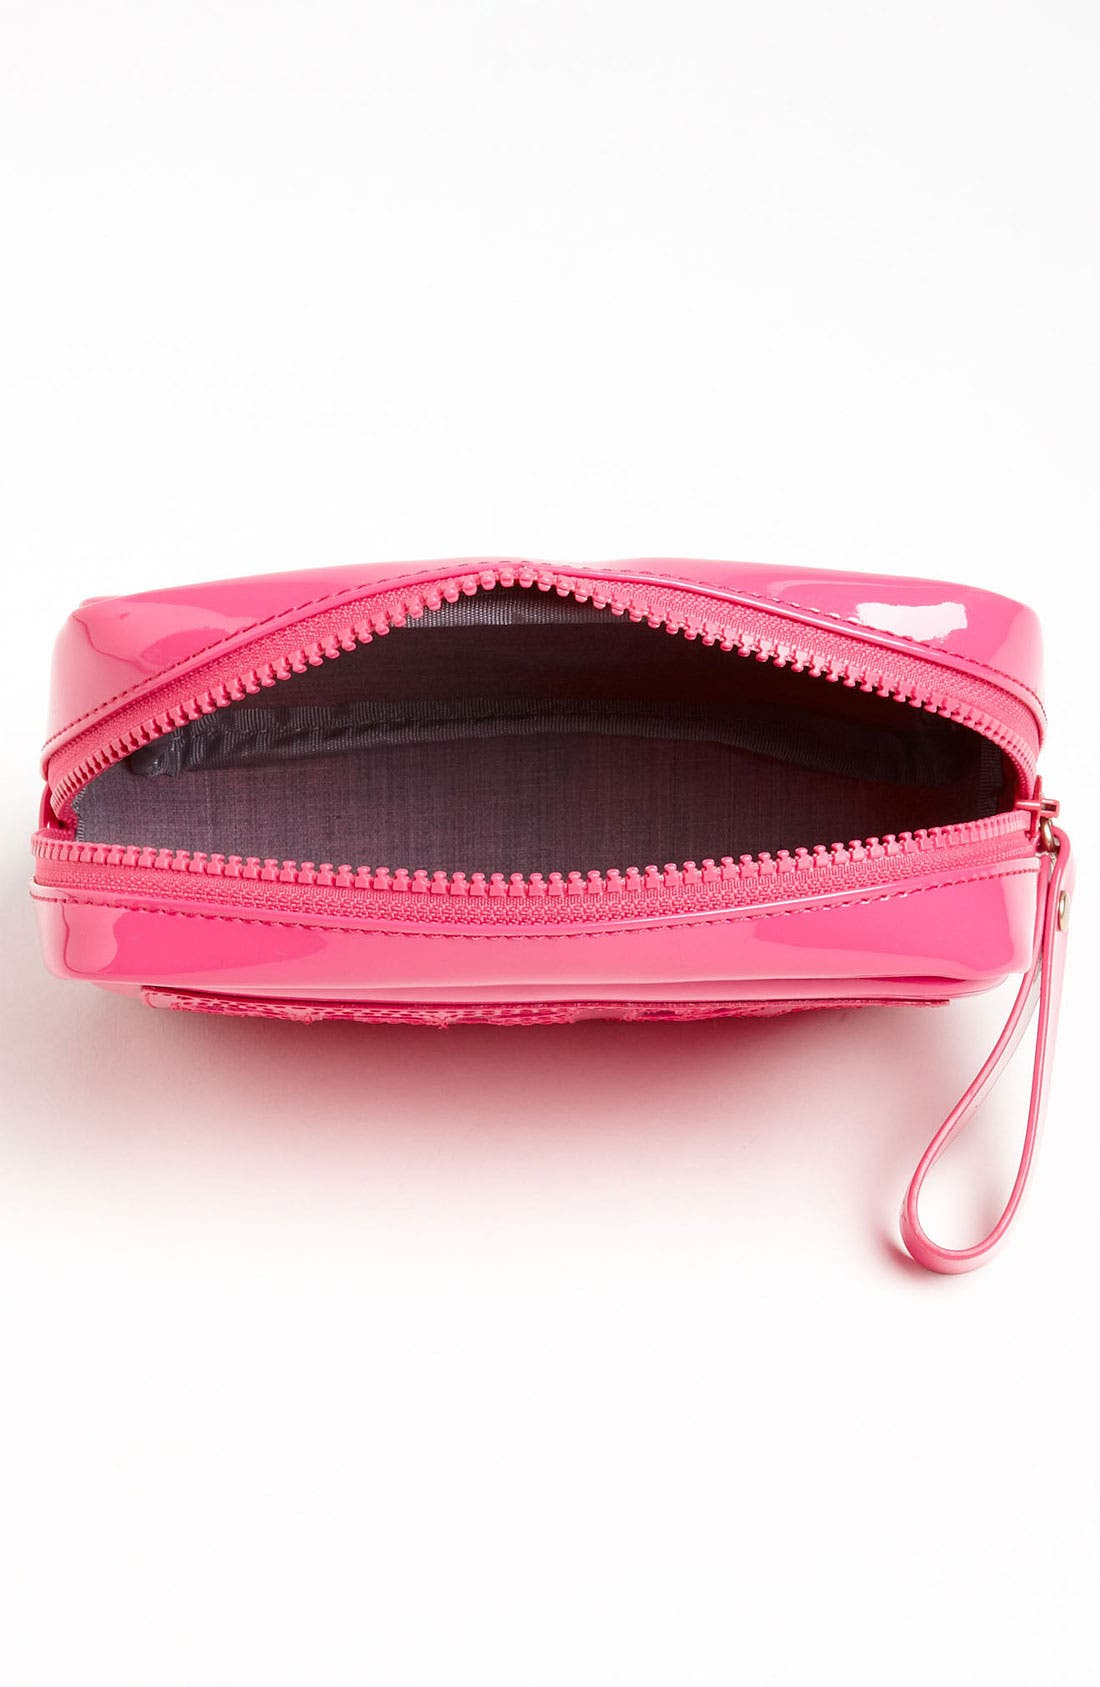 Alternate Image 3  - See By Chloé 'Zip File' Zip Around Pouch